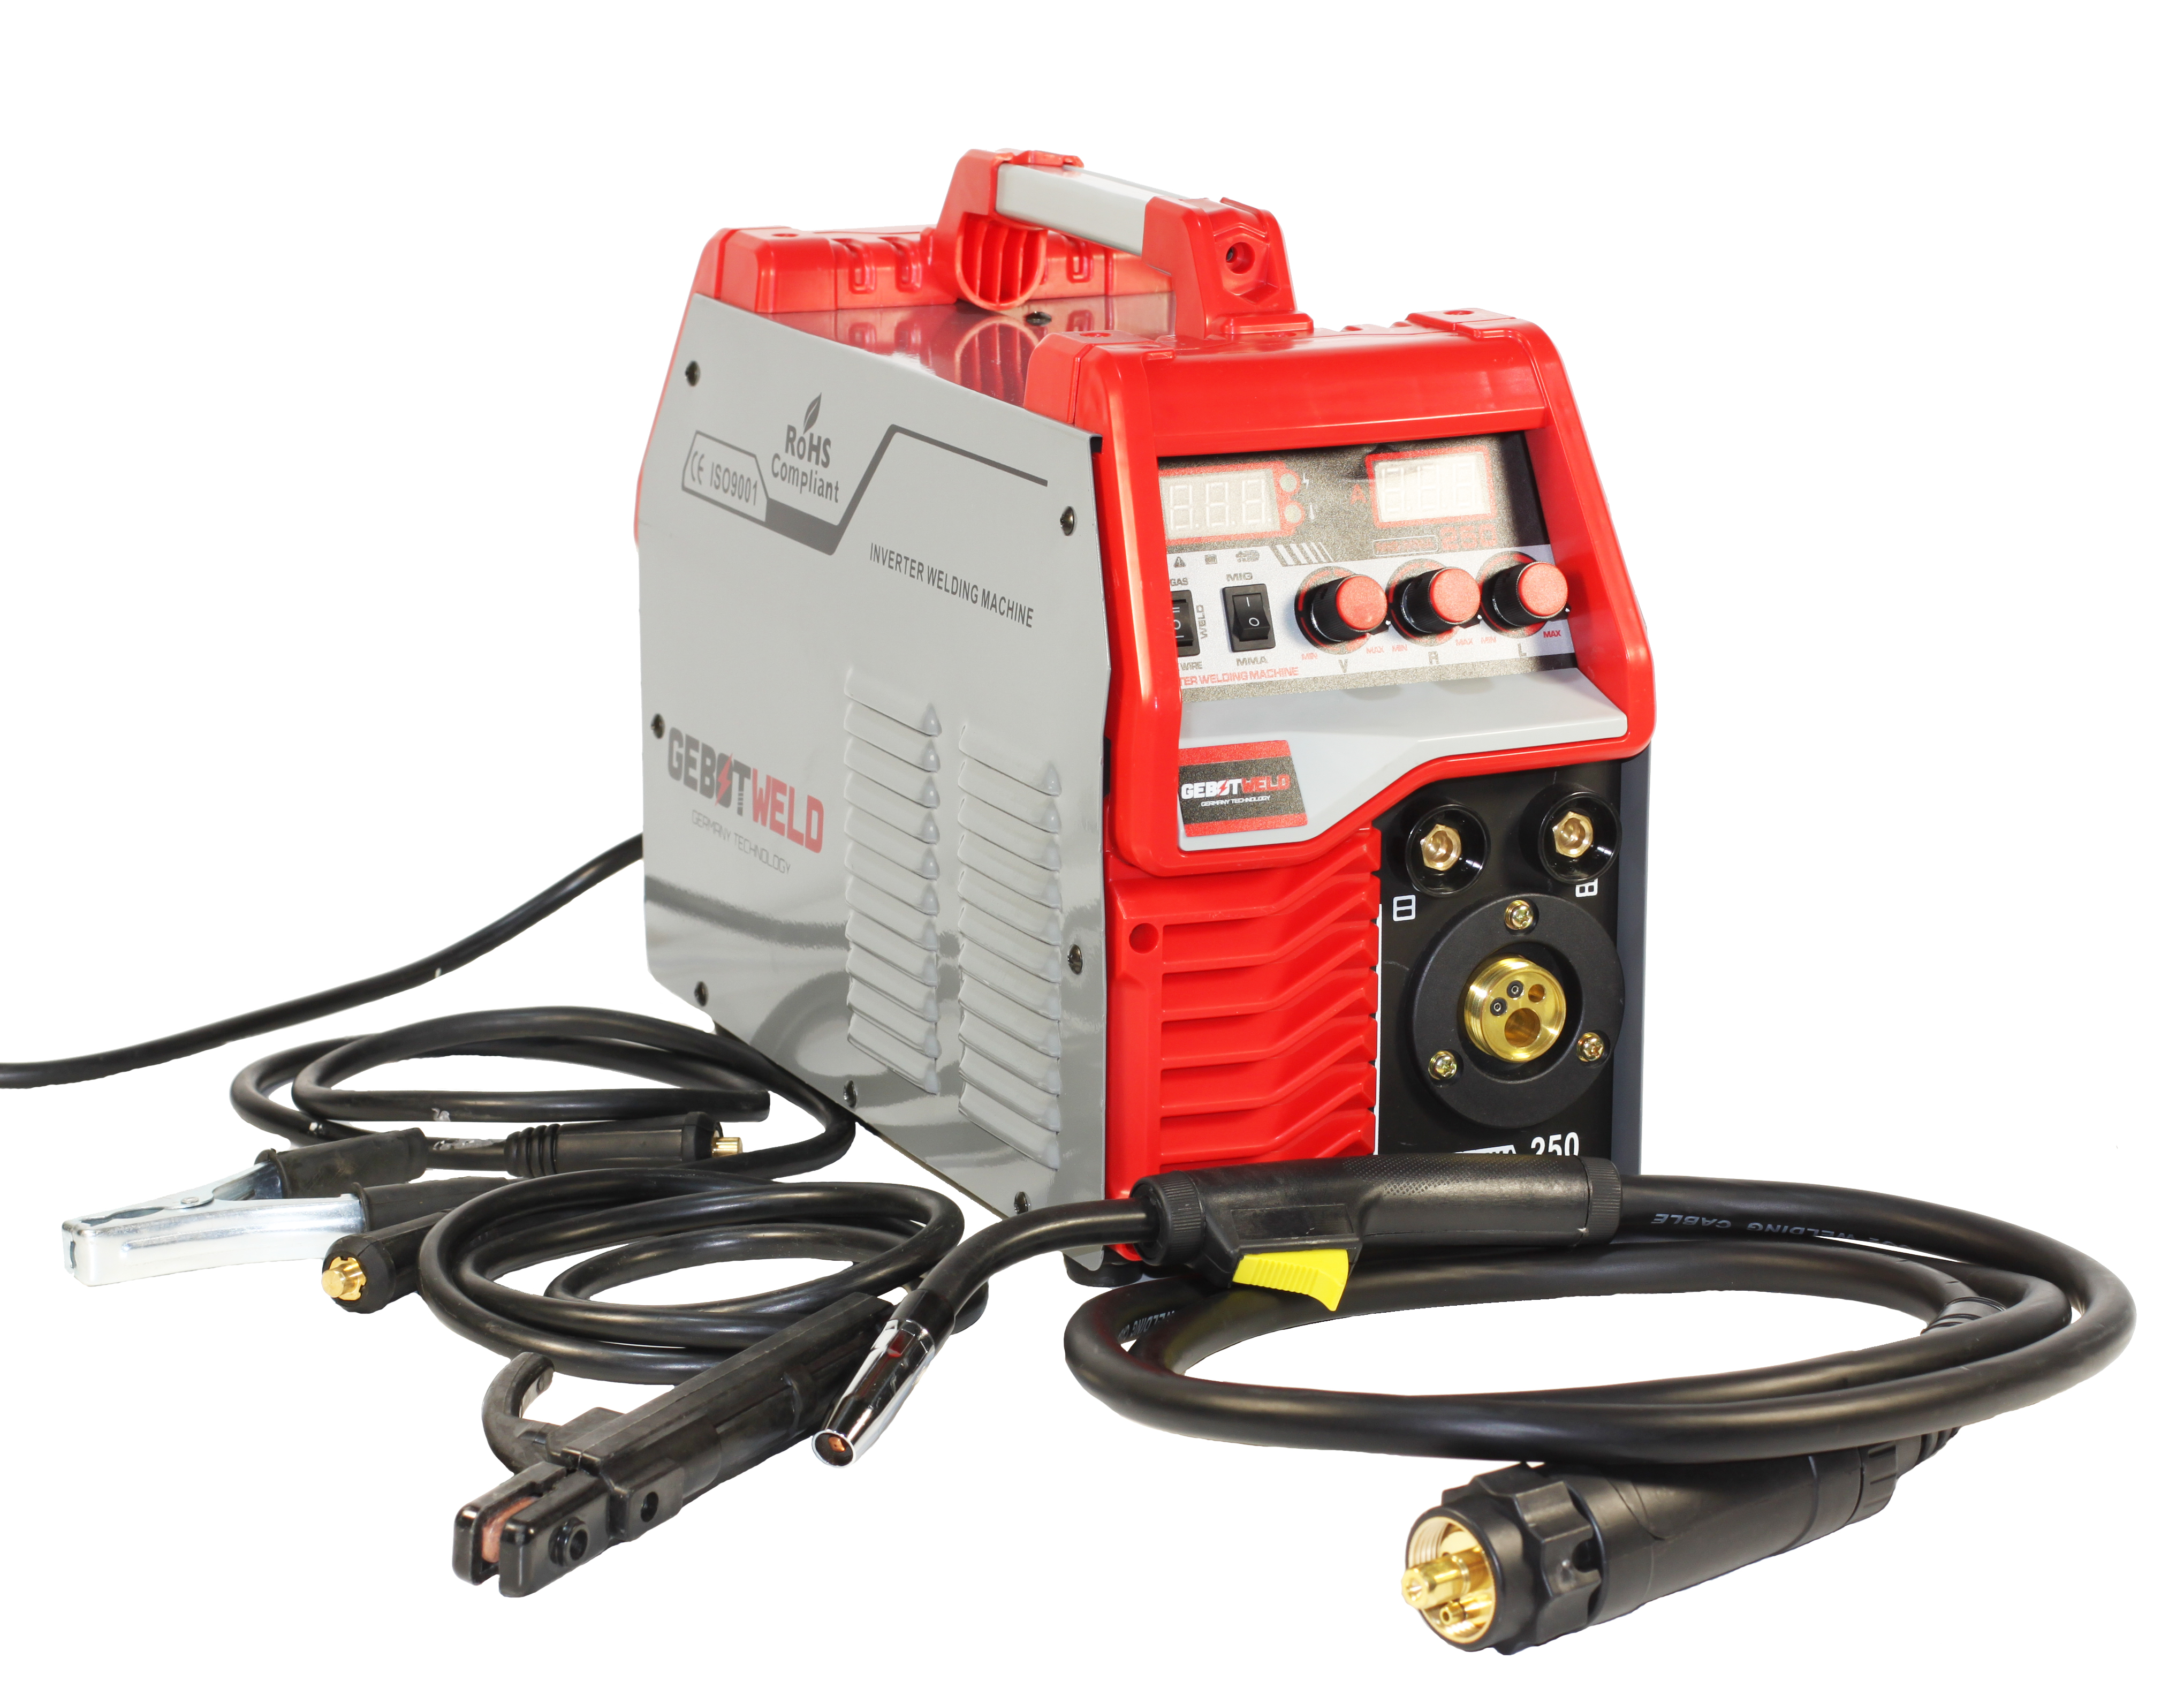 Welding 220V semiautomatic device: technical characteristics, reviews of manufacturers 98